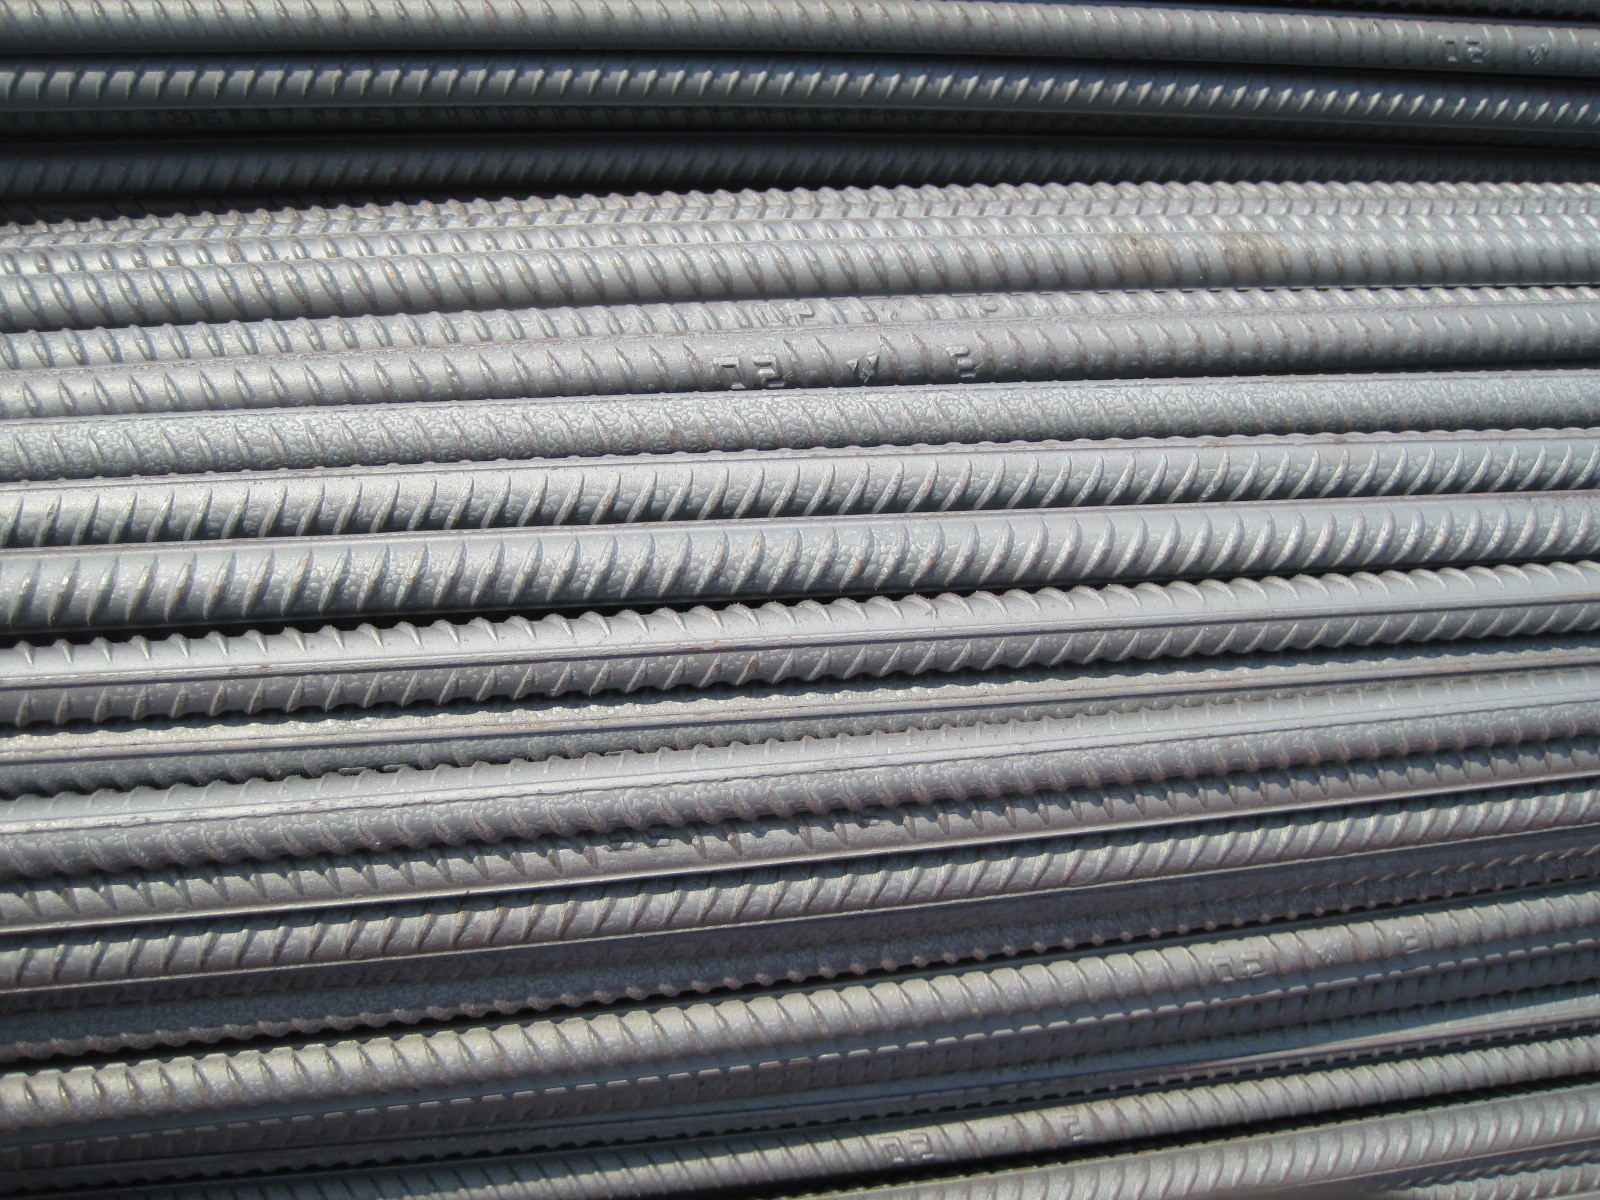 Plate, screw wire, thread wire, high wire, plate, screw, mesh quality wire, rod, stock makers